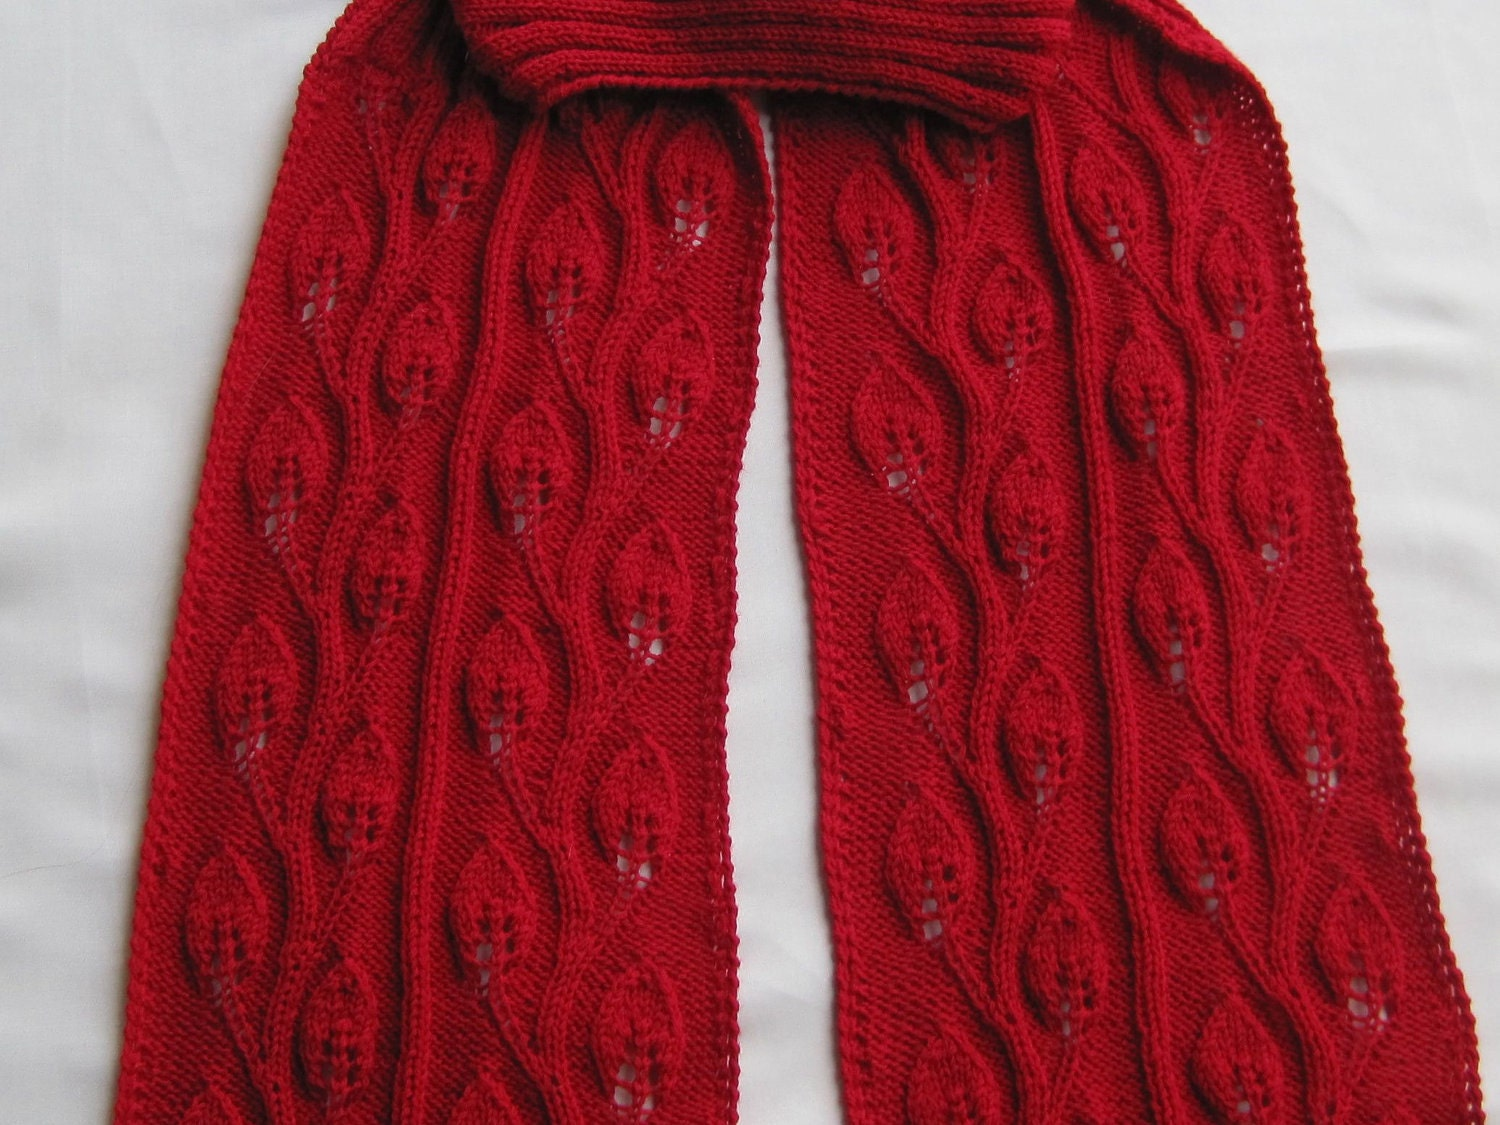 Vine Leaf Knitting Pattern : Knit Scarf Pattern: Climbing Rose Vine Turtleneck Scarf